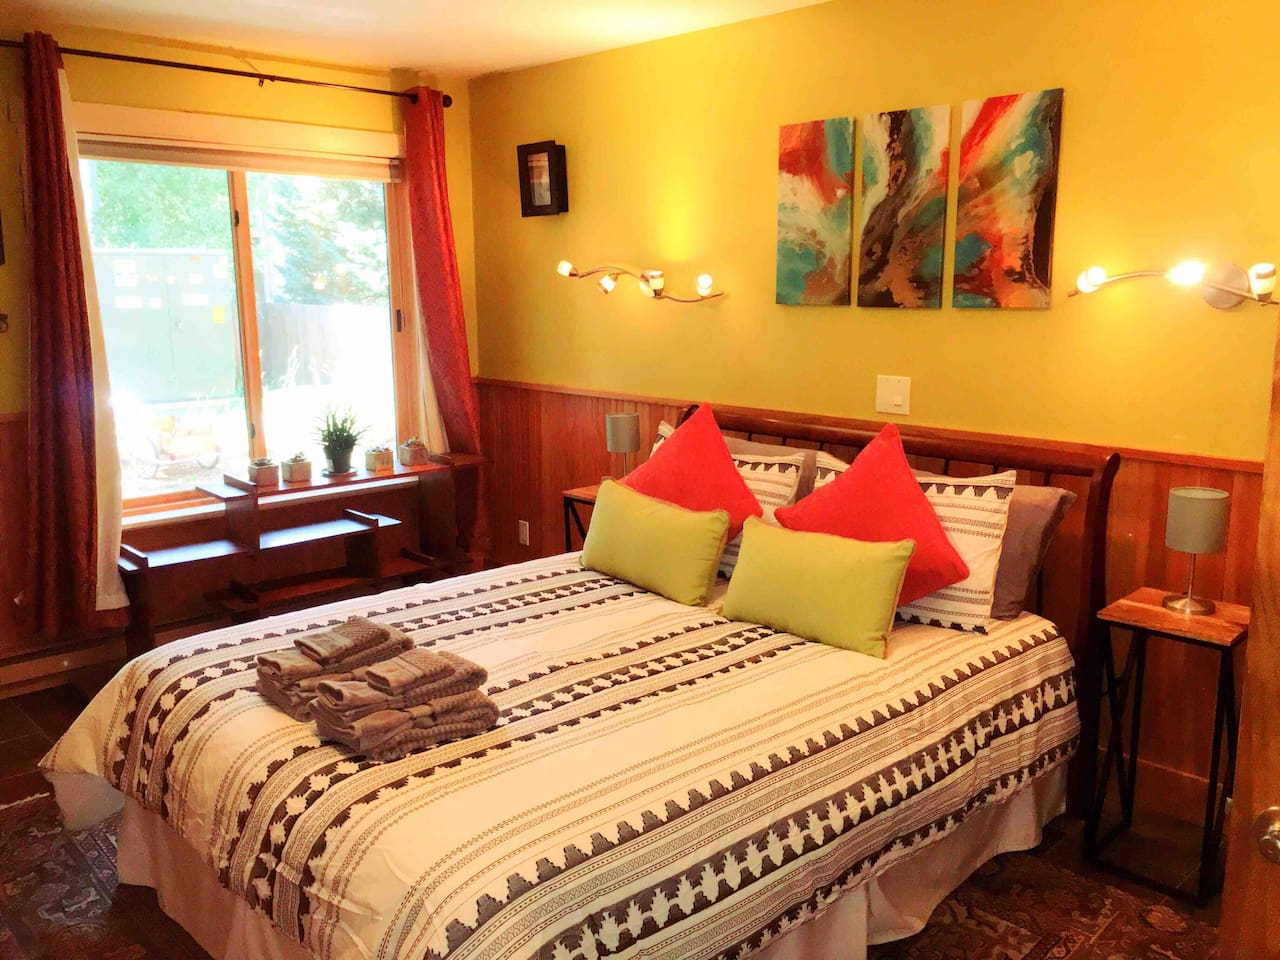 This is the spacious master bedroom, lots of light and a comfortable bed.